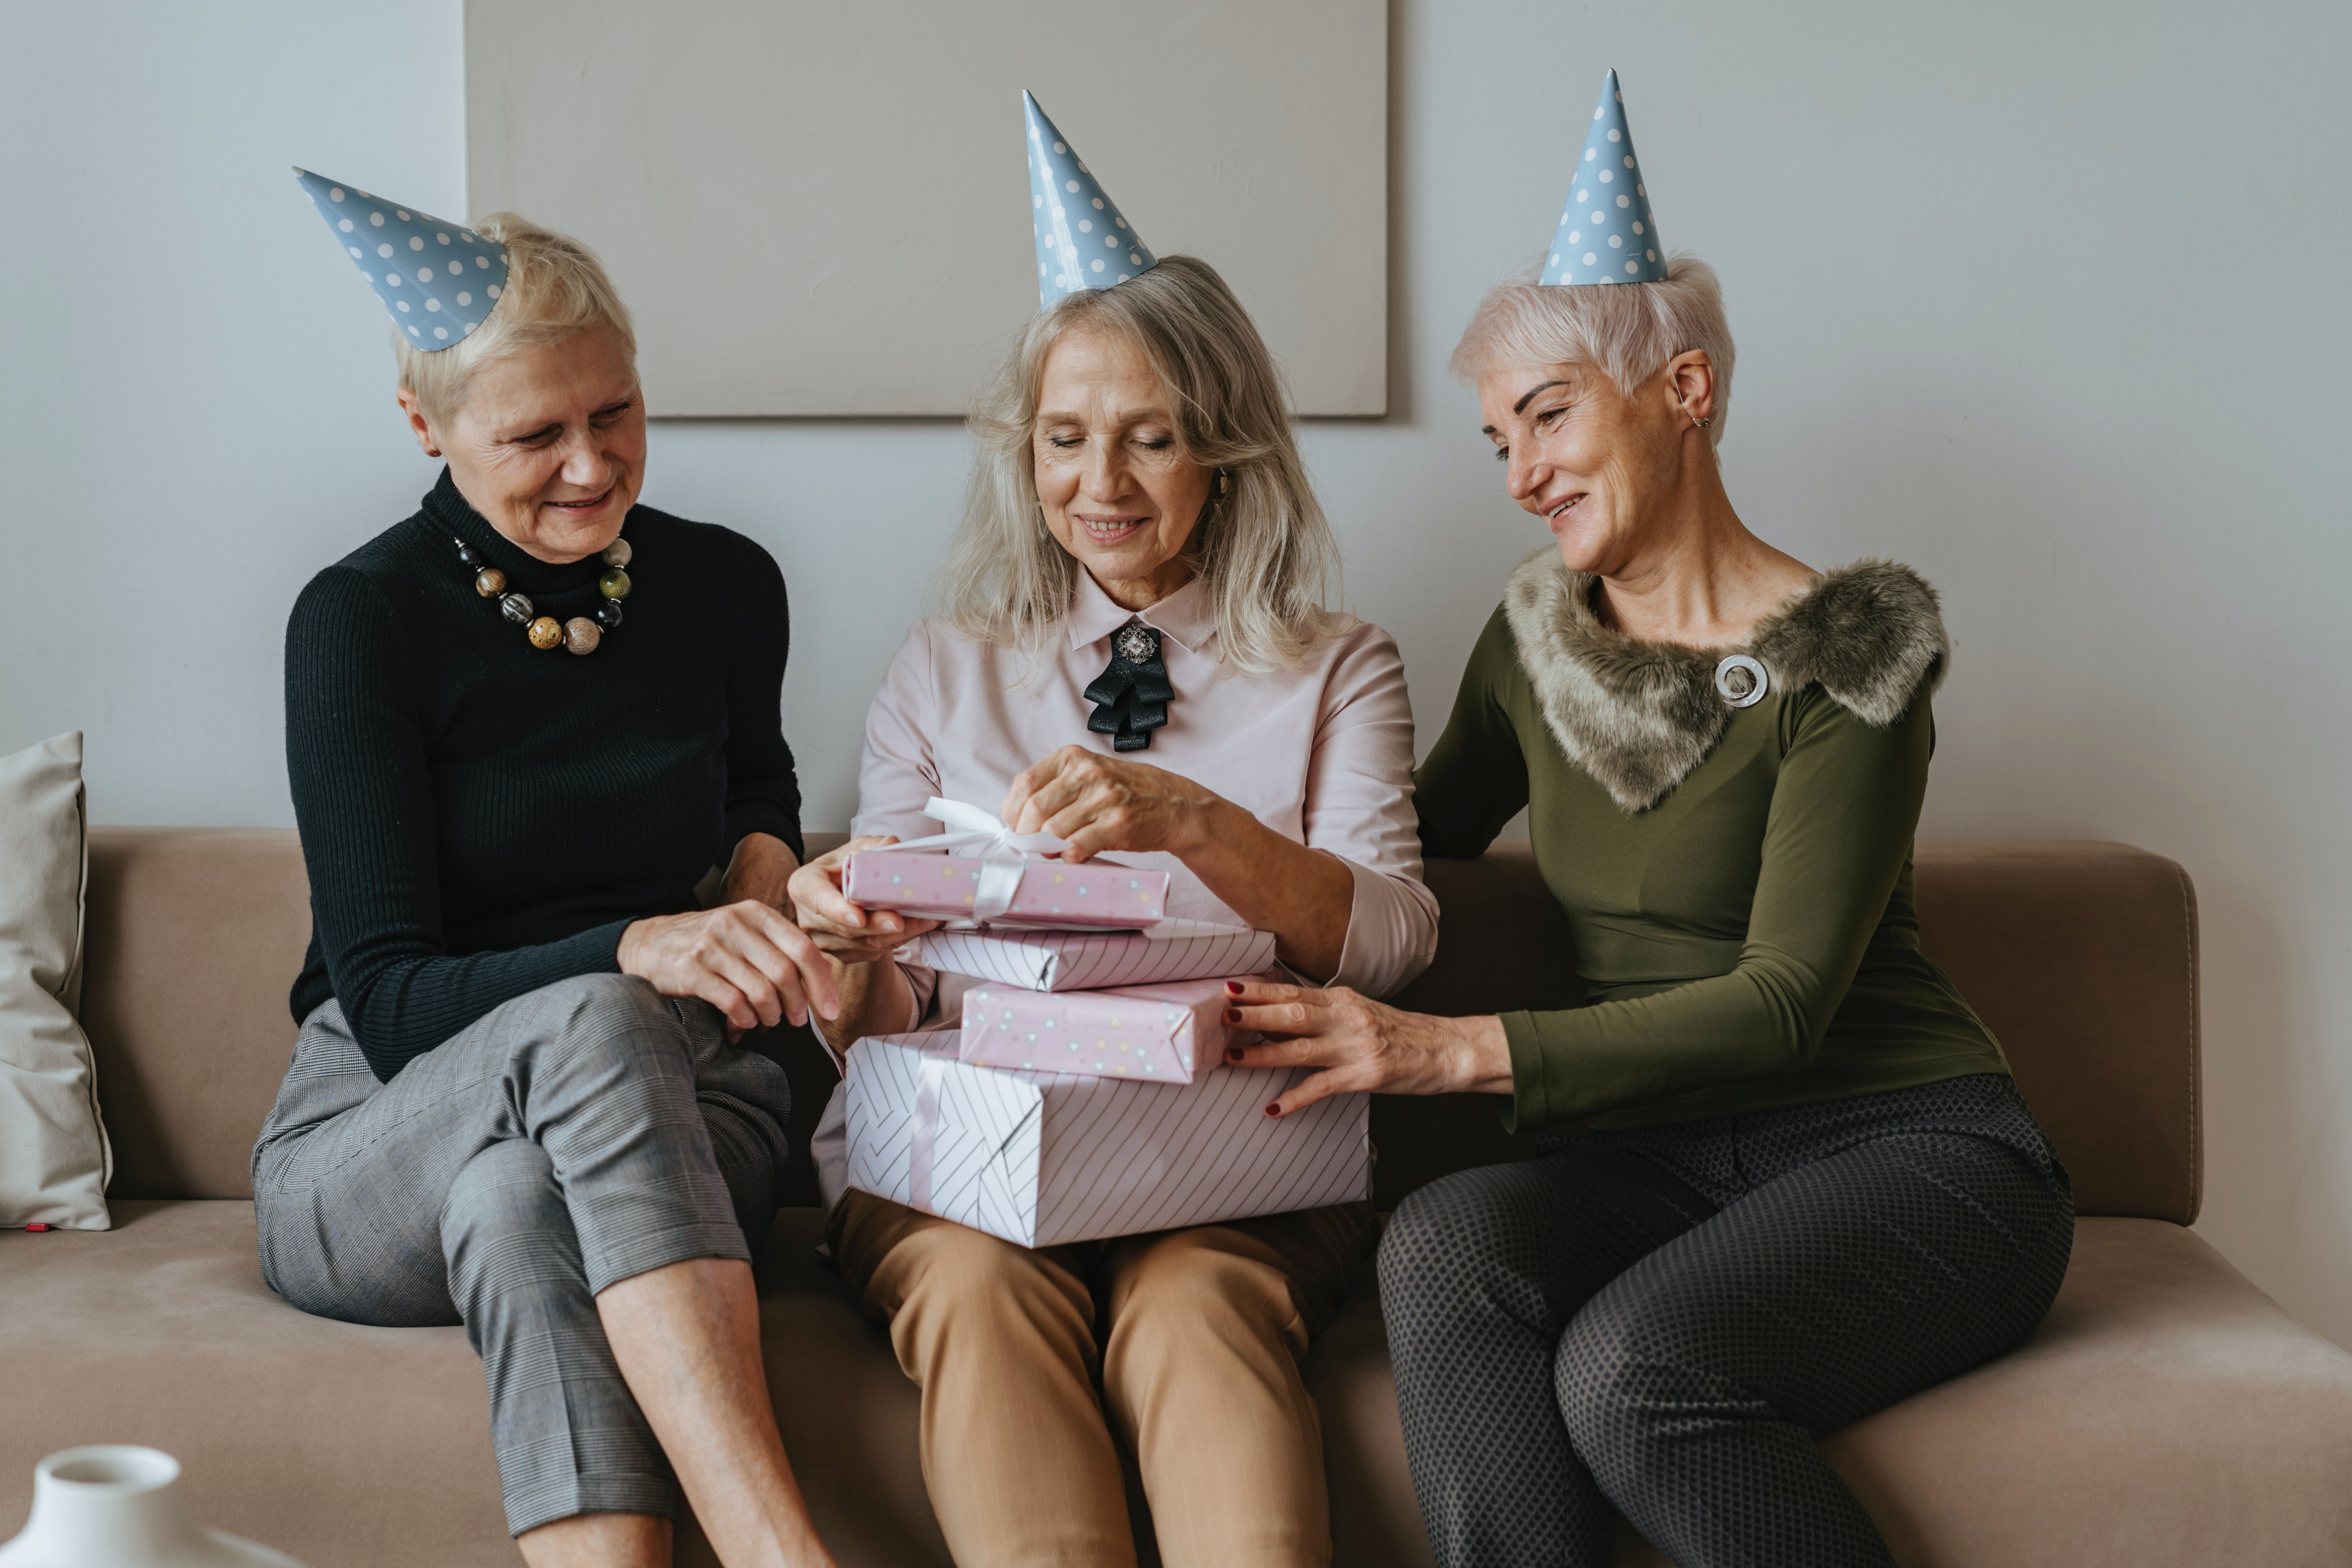 Birthdays, Ages 10 to 70